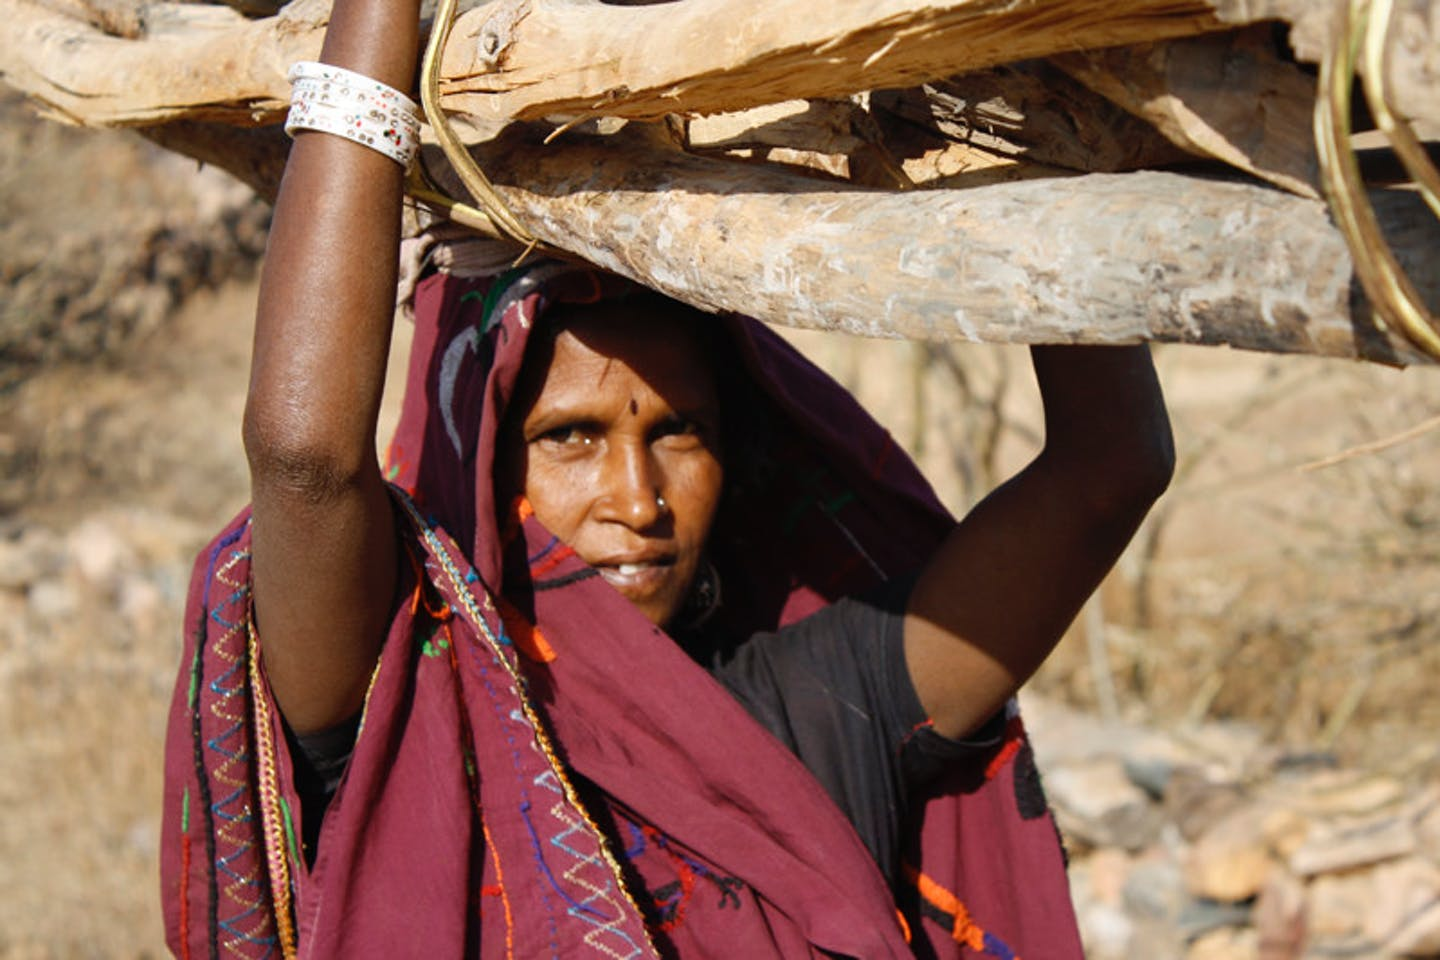 Woman carrying firewood in India